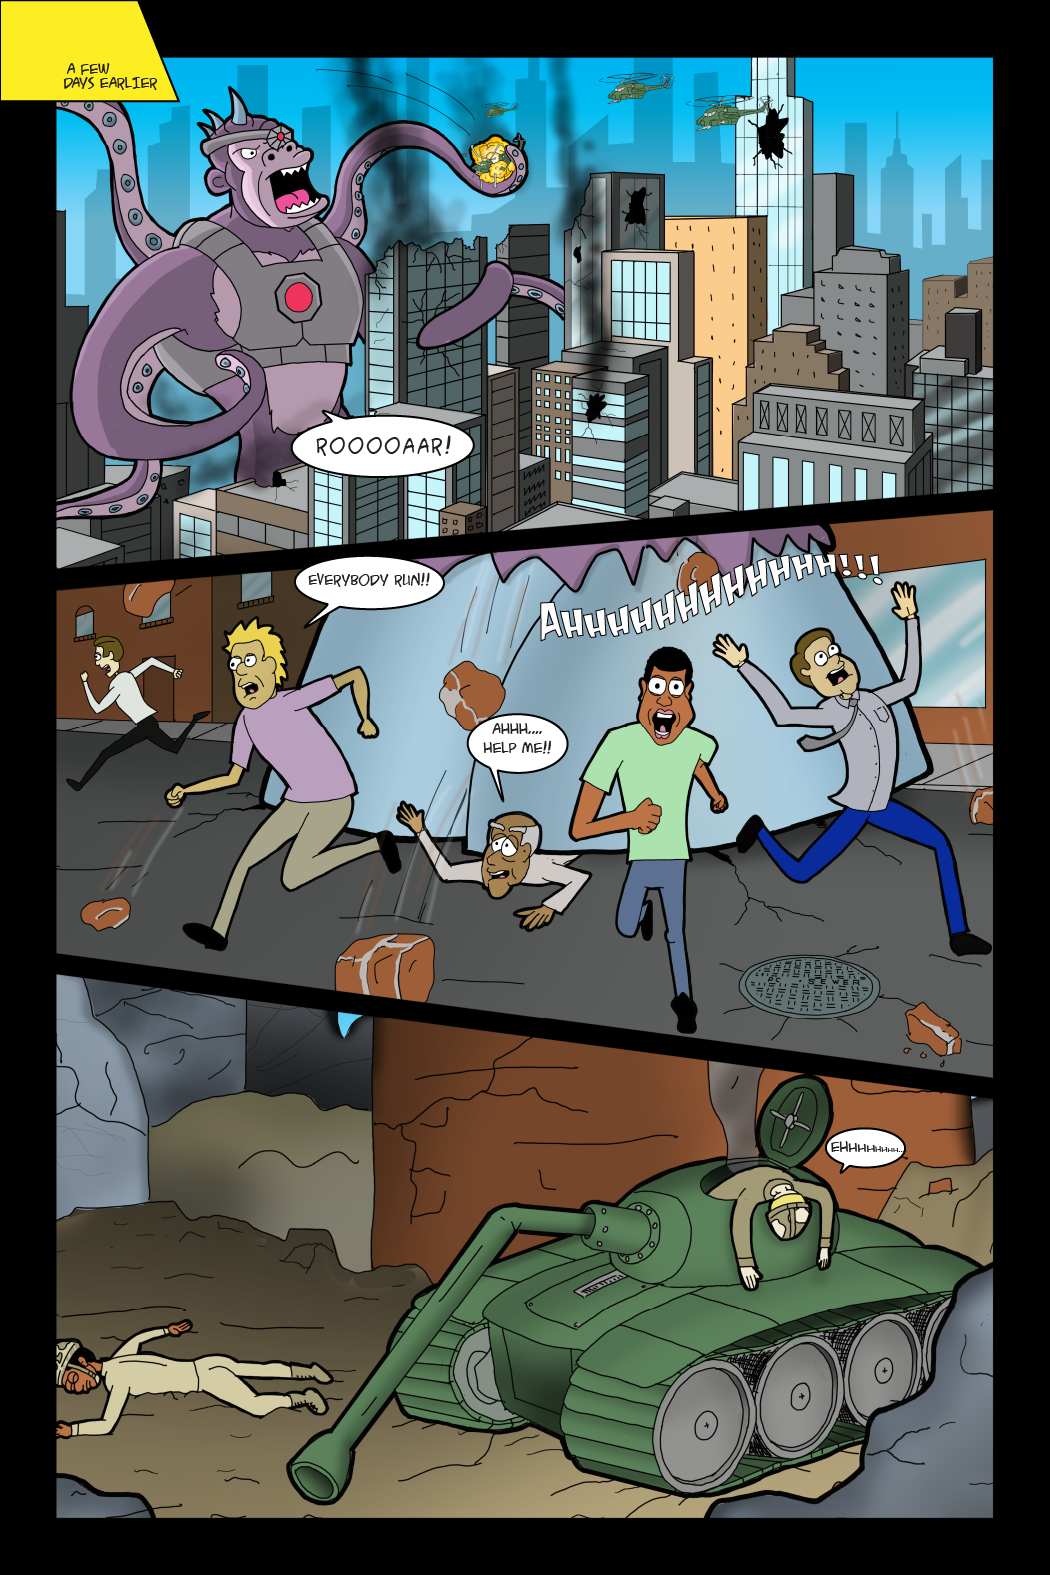 Adventures with Capt'n Heroic, Chapter 1, Page 3